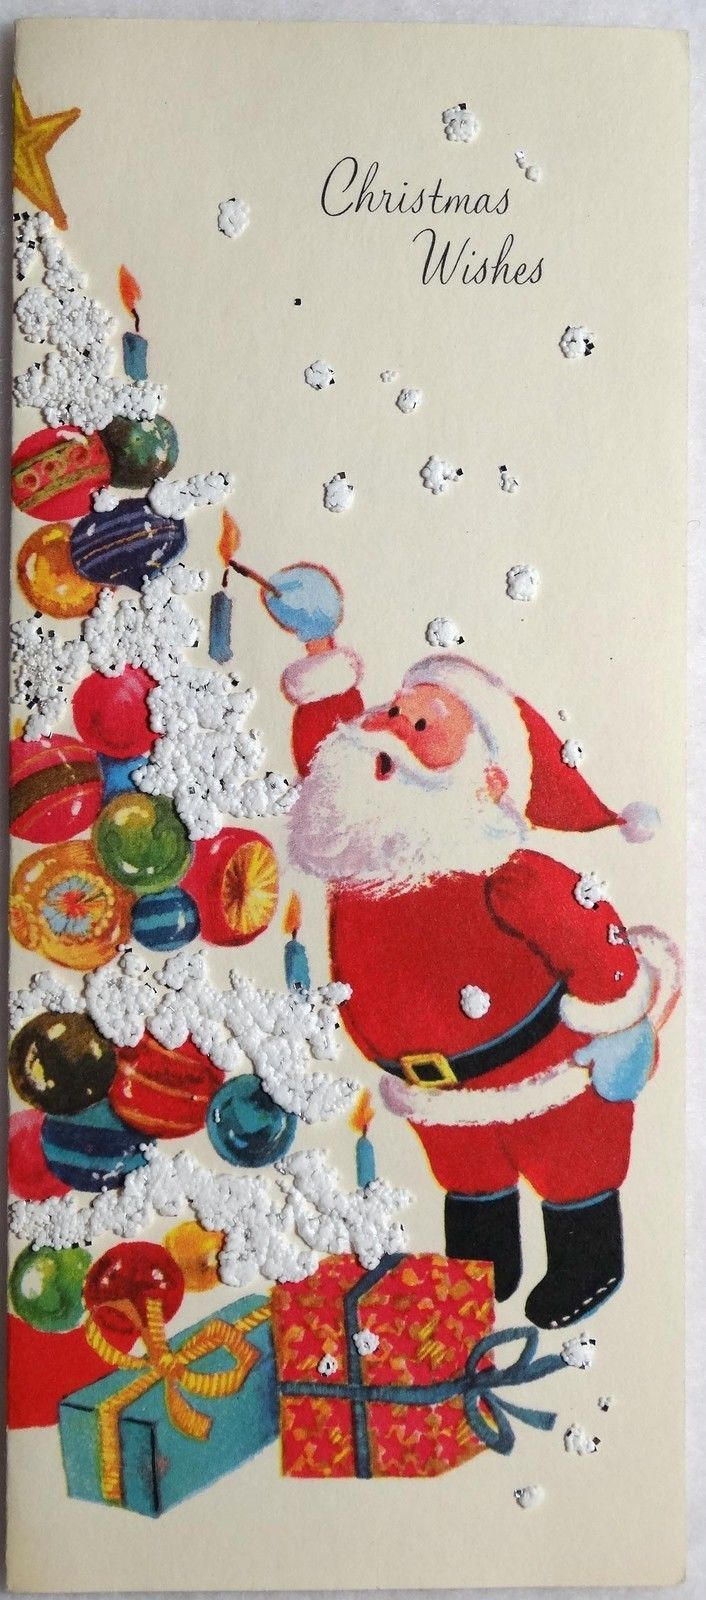 195 50s Santa w Popcorn Tree Vintage Christmas Greeting Card | eBay